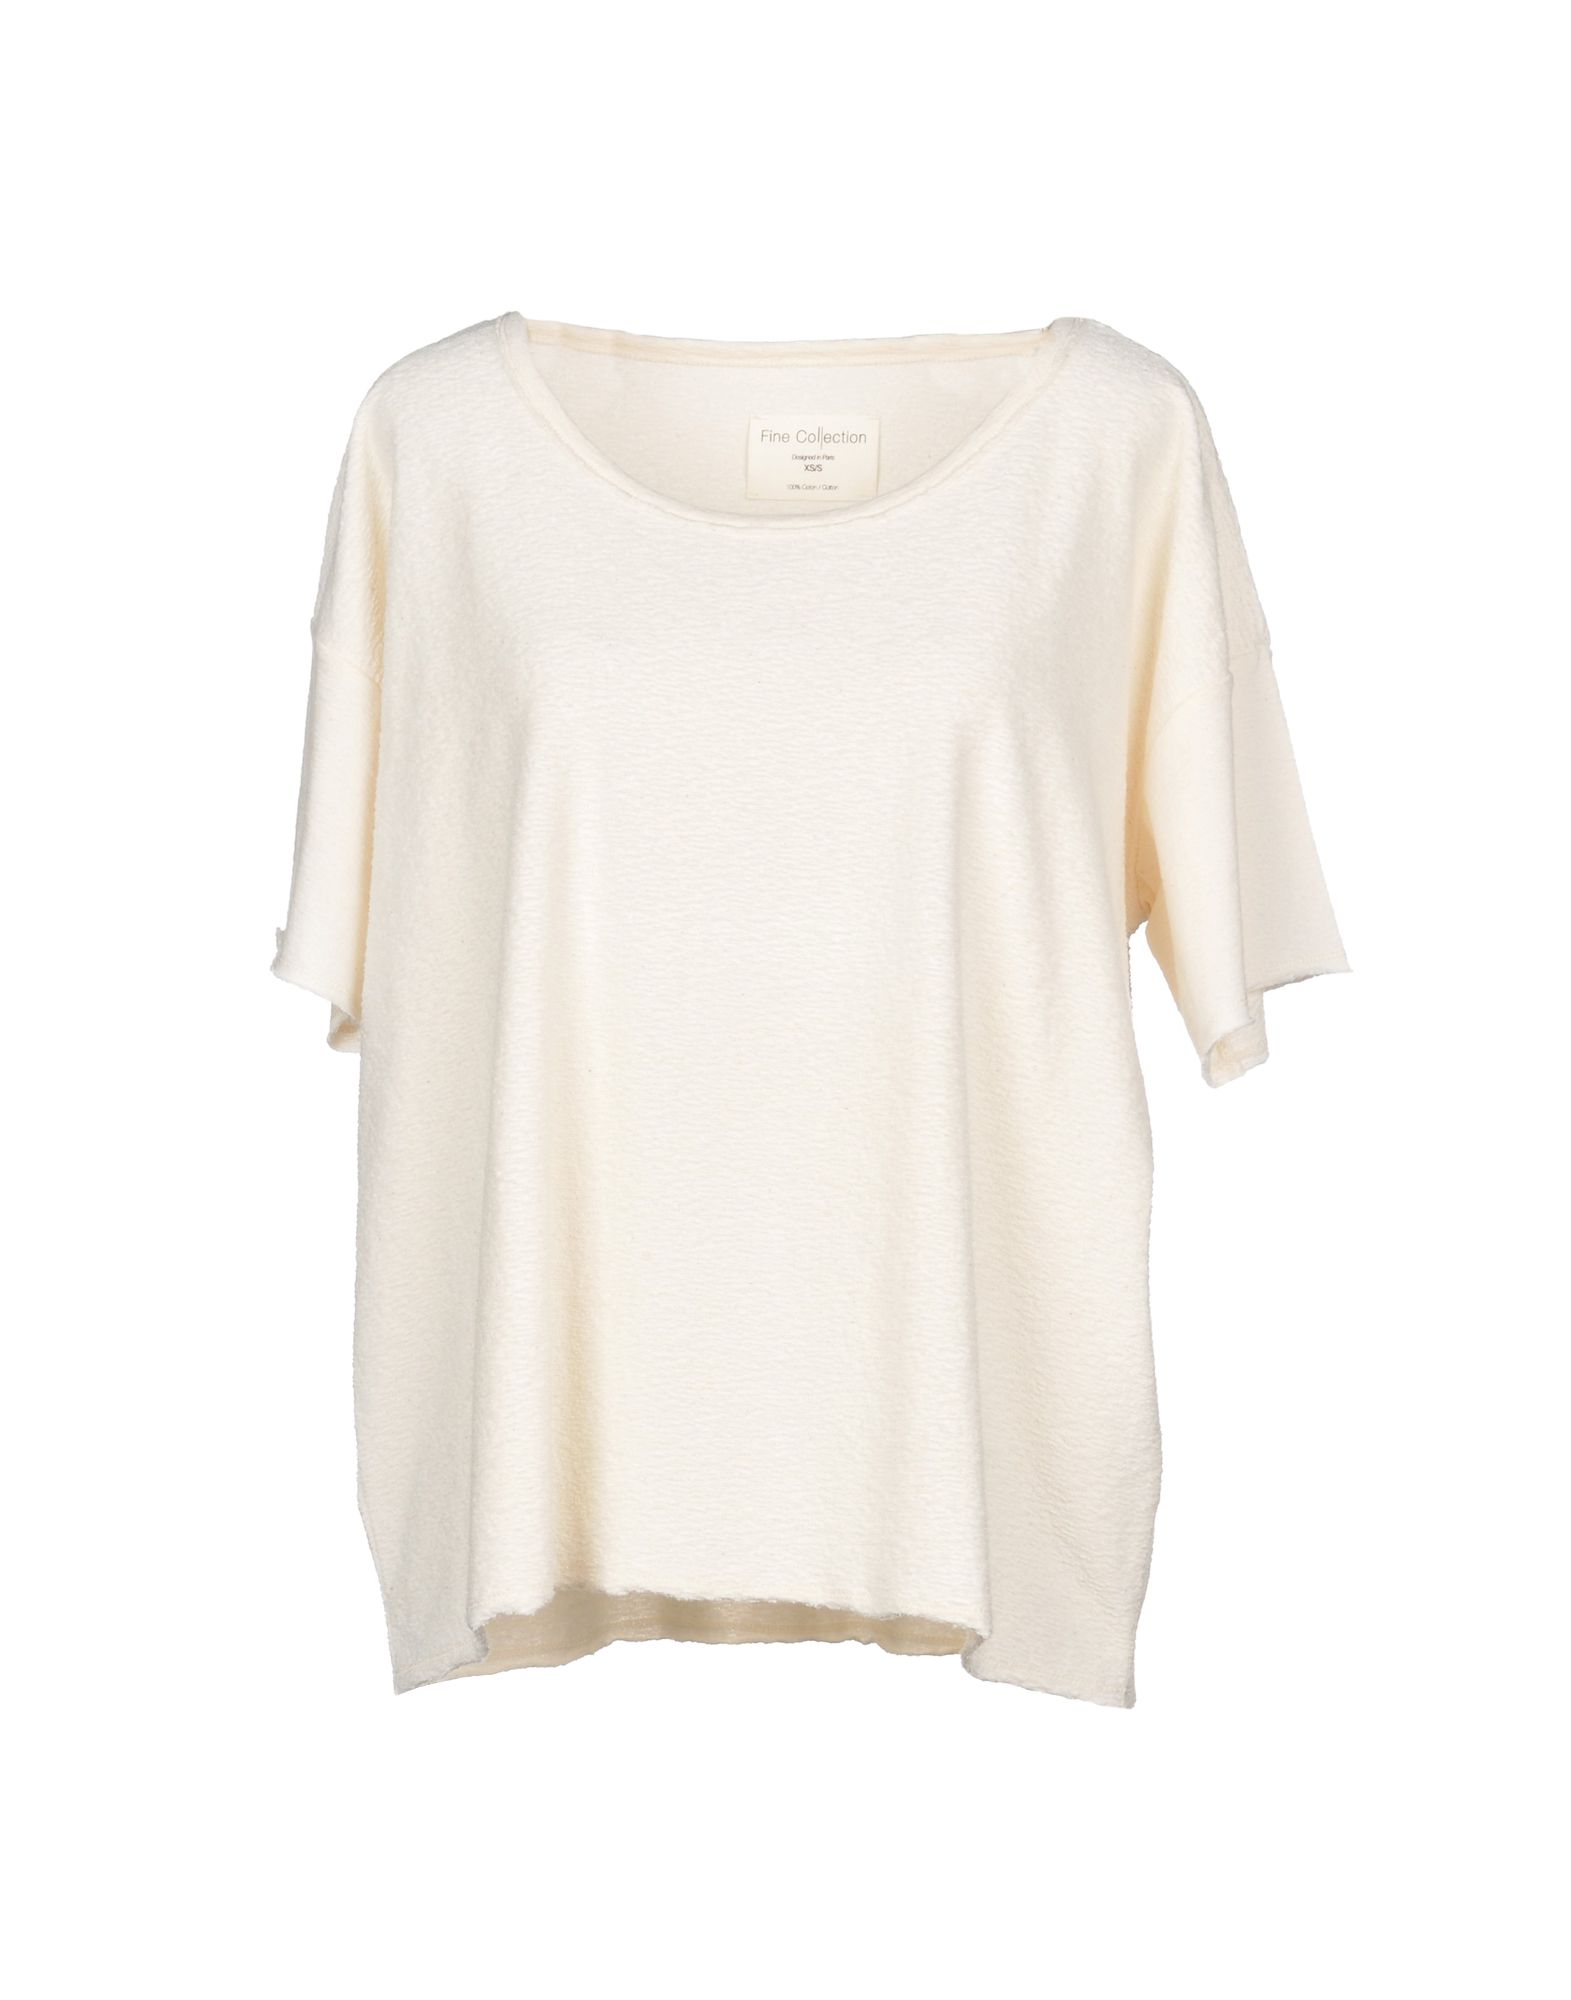 FINE COLLECTION T-Shirt in Ivory